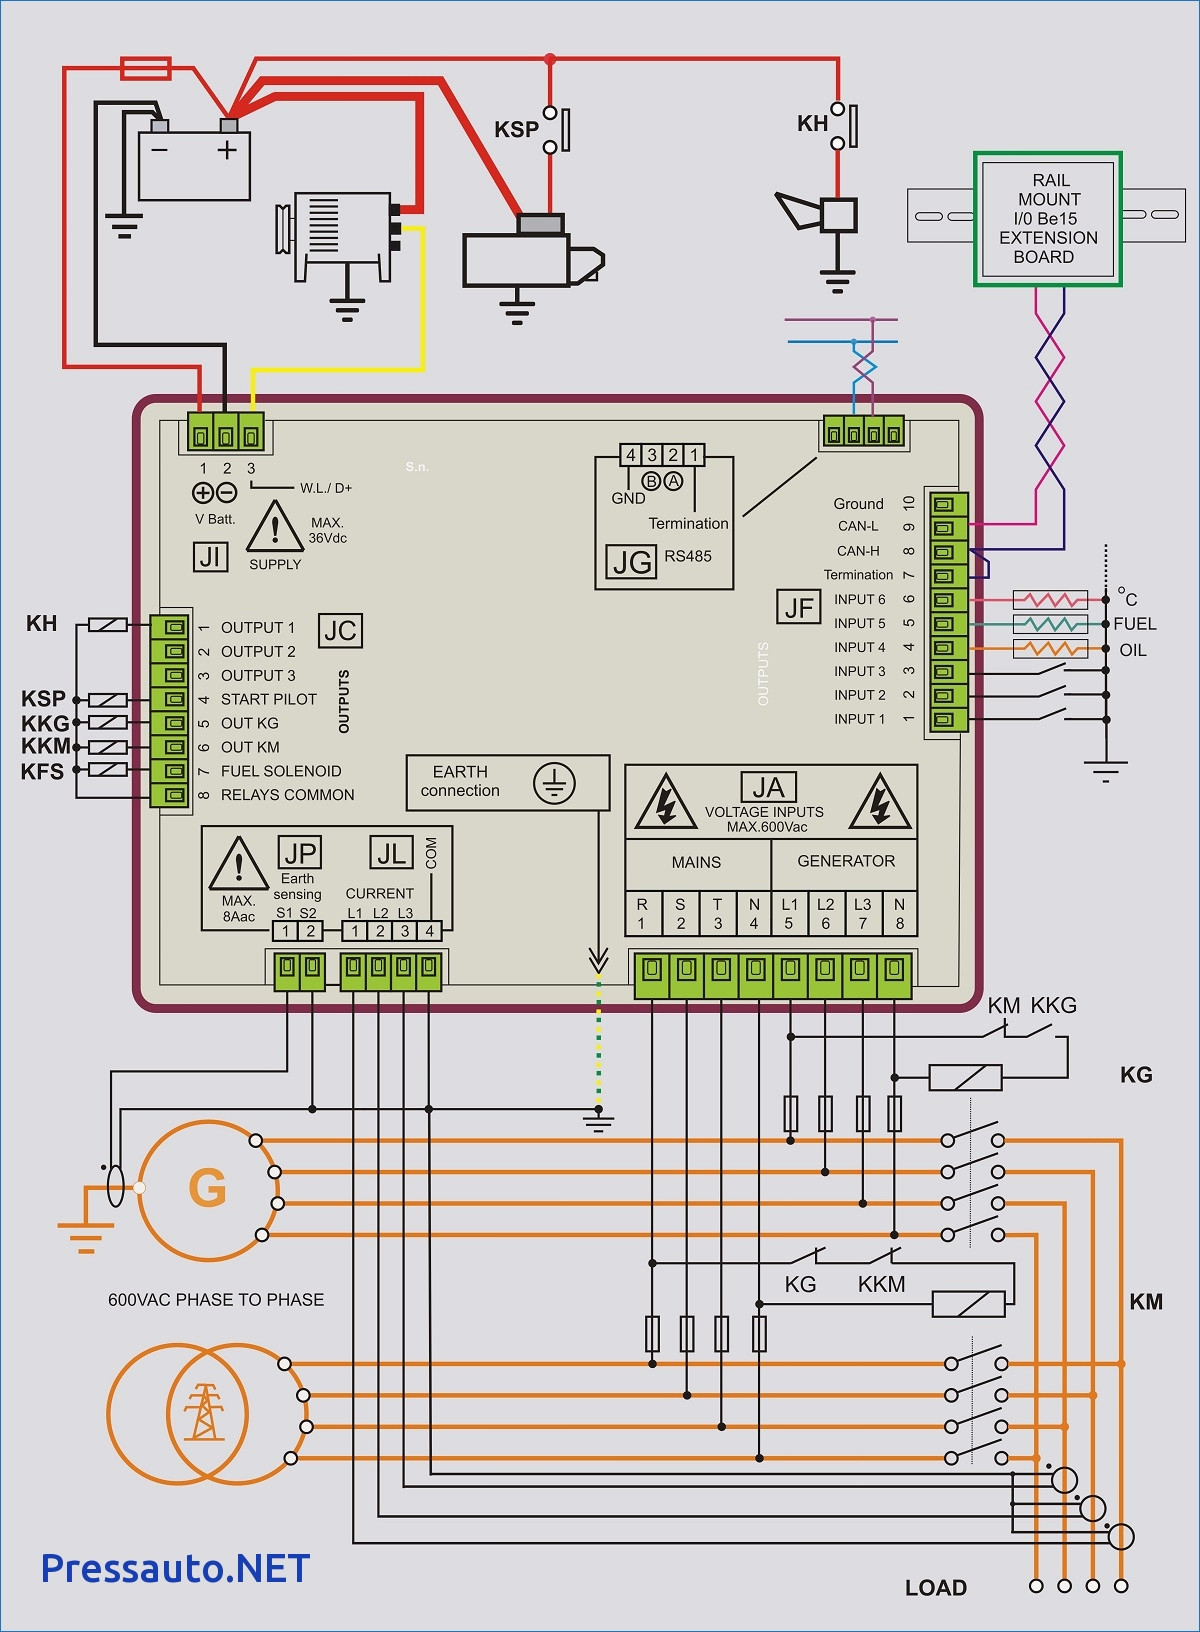 Diagram Ats Wiring Diagram For Standby Generator Manual Auto With Relays Full Version Hd Quality With Relays Trackdiagrams Agorasup Fr